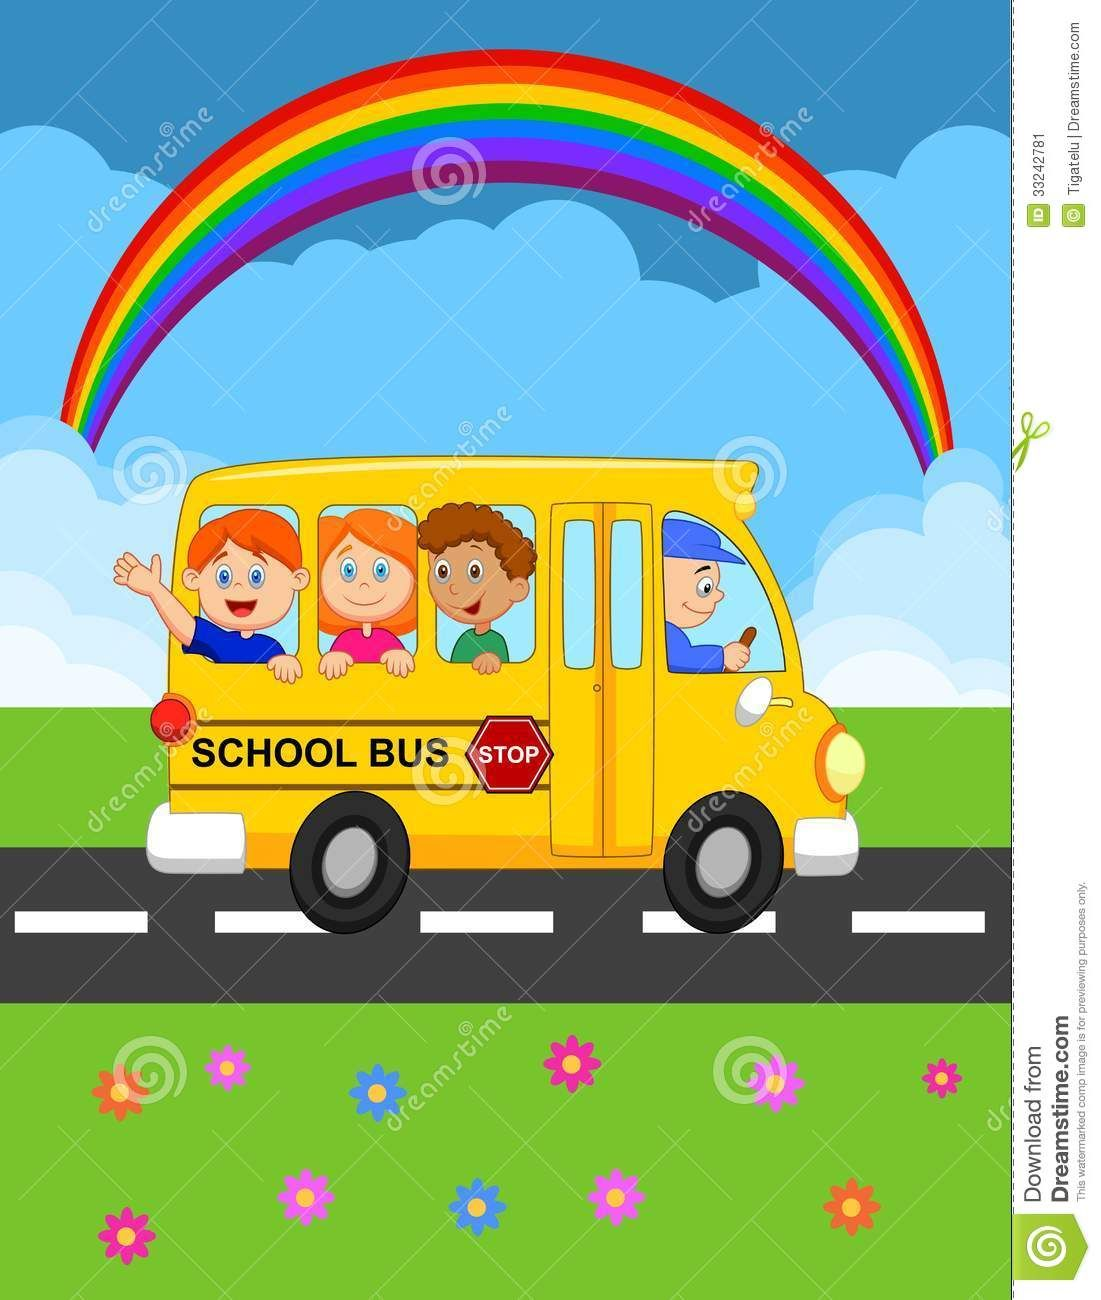 Thumbs Dreamstime Com Z Cartoon School Bus Happy Children